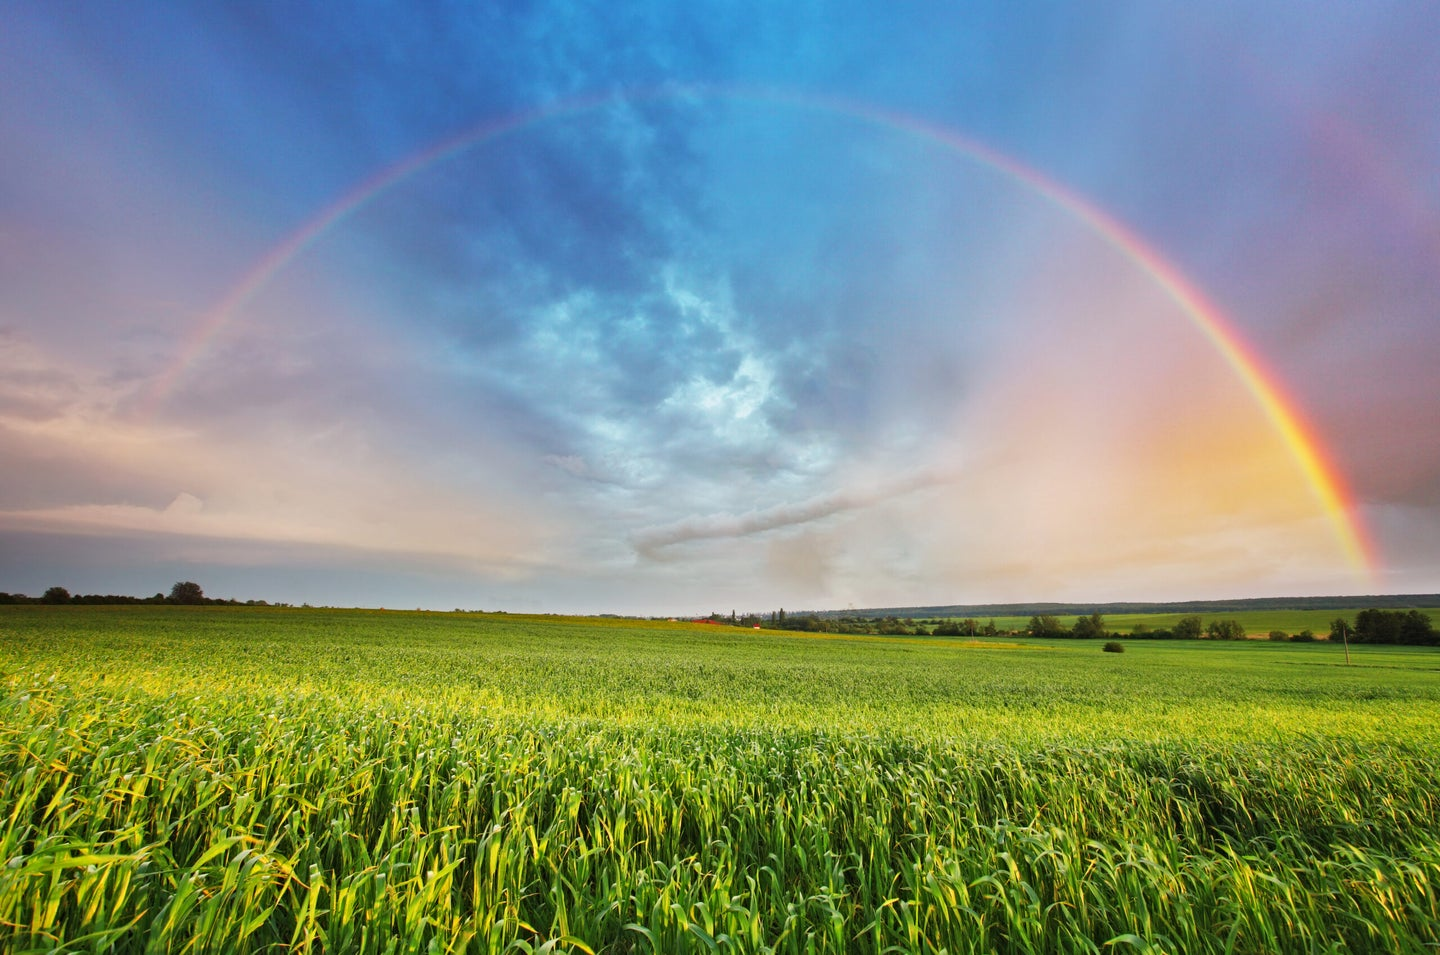 How is a rainbow formed?